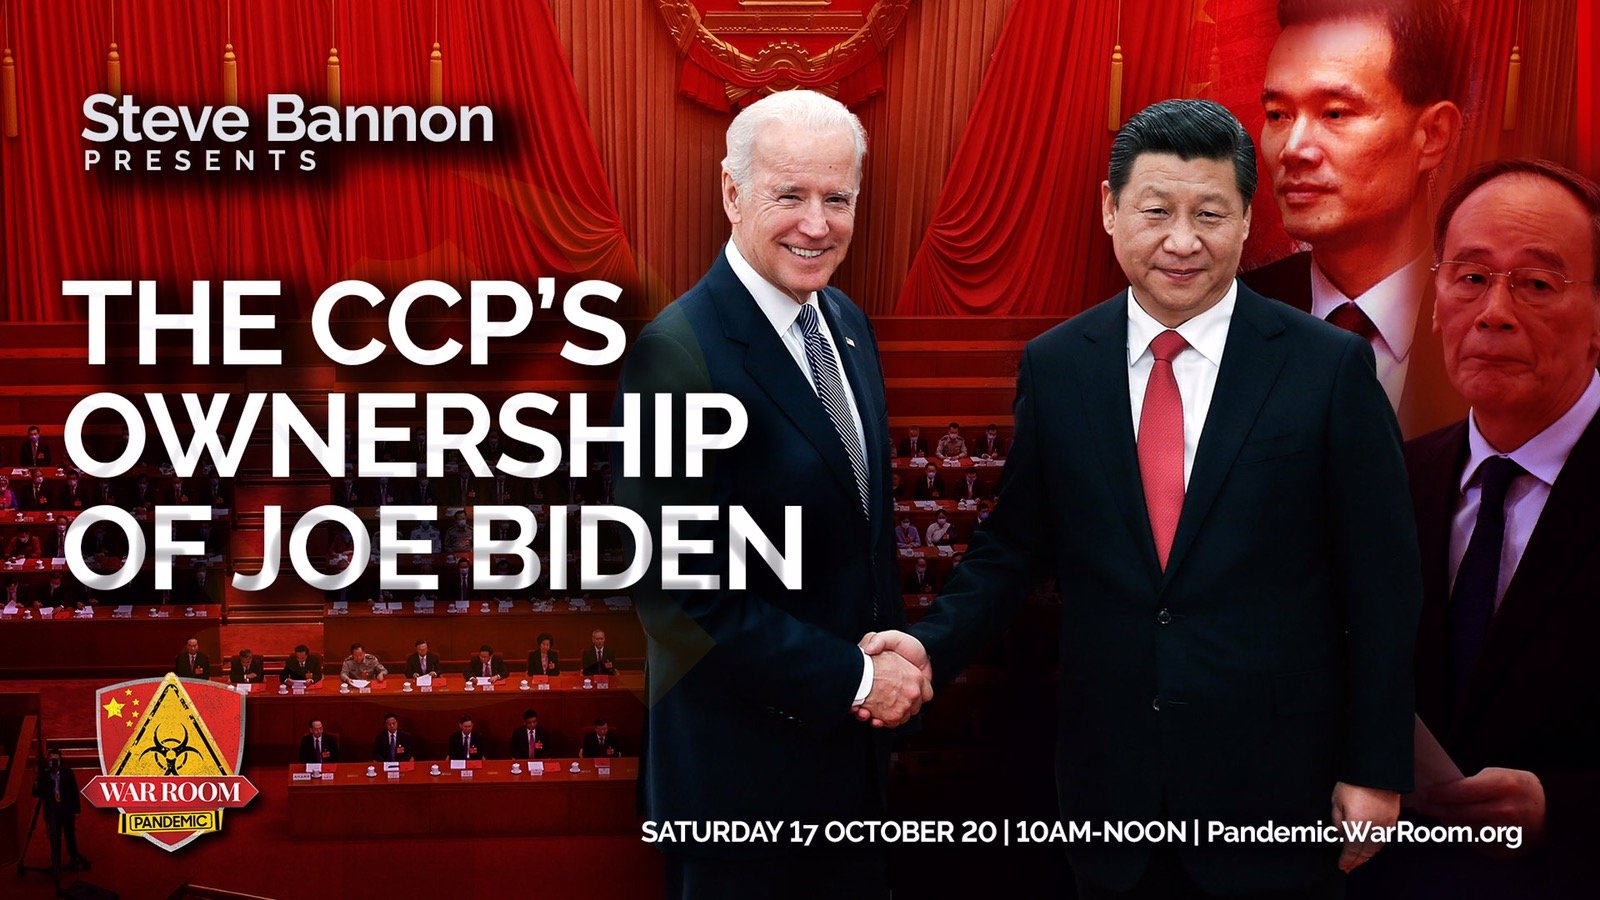 Chinese Group Behind Release of Biden Tapes Claim Bidens Offered Up CIA Agents Who Went Missing in China in 2010 -2012